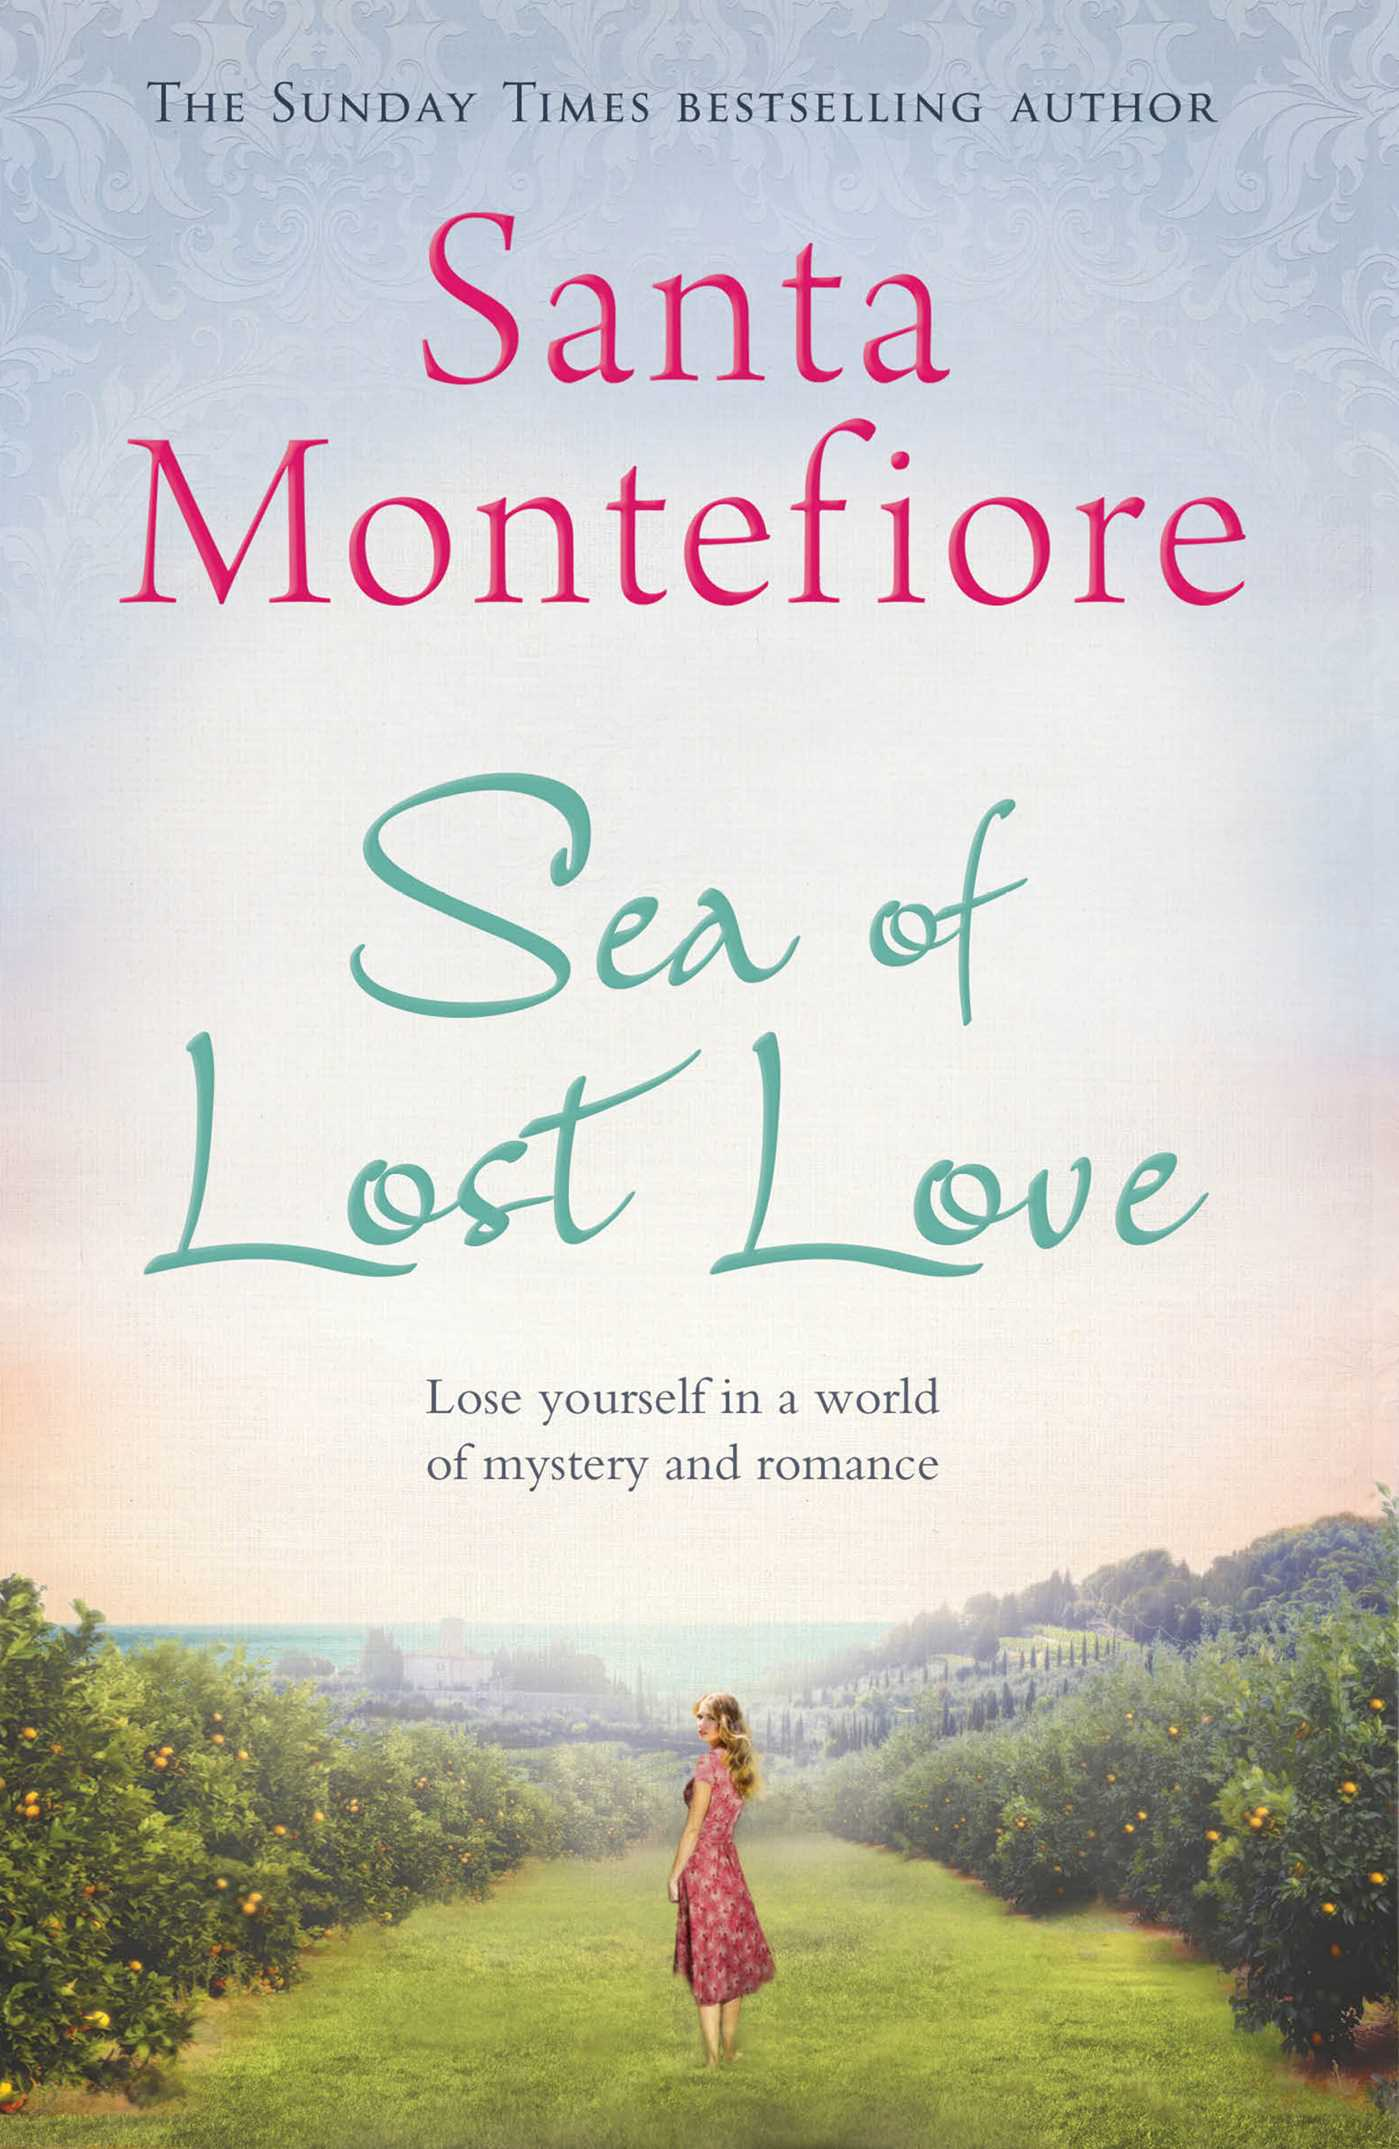 Santa montefiore official publisher page simon schuster uk book cover image jpg sea of lost love ebook 9781471132056 fandeluxe Ebook collections